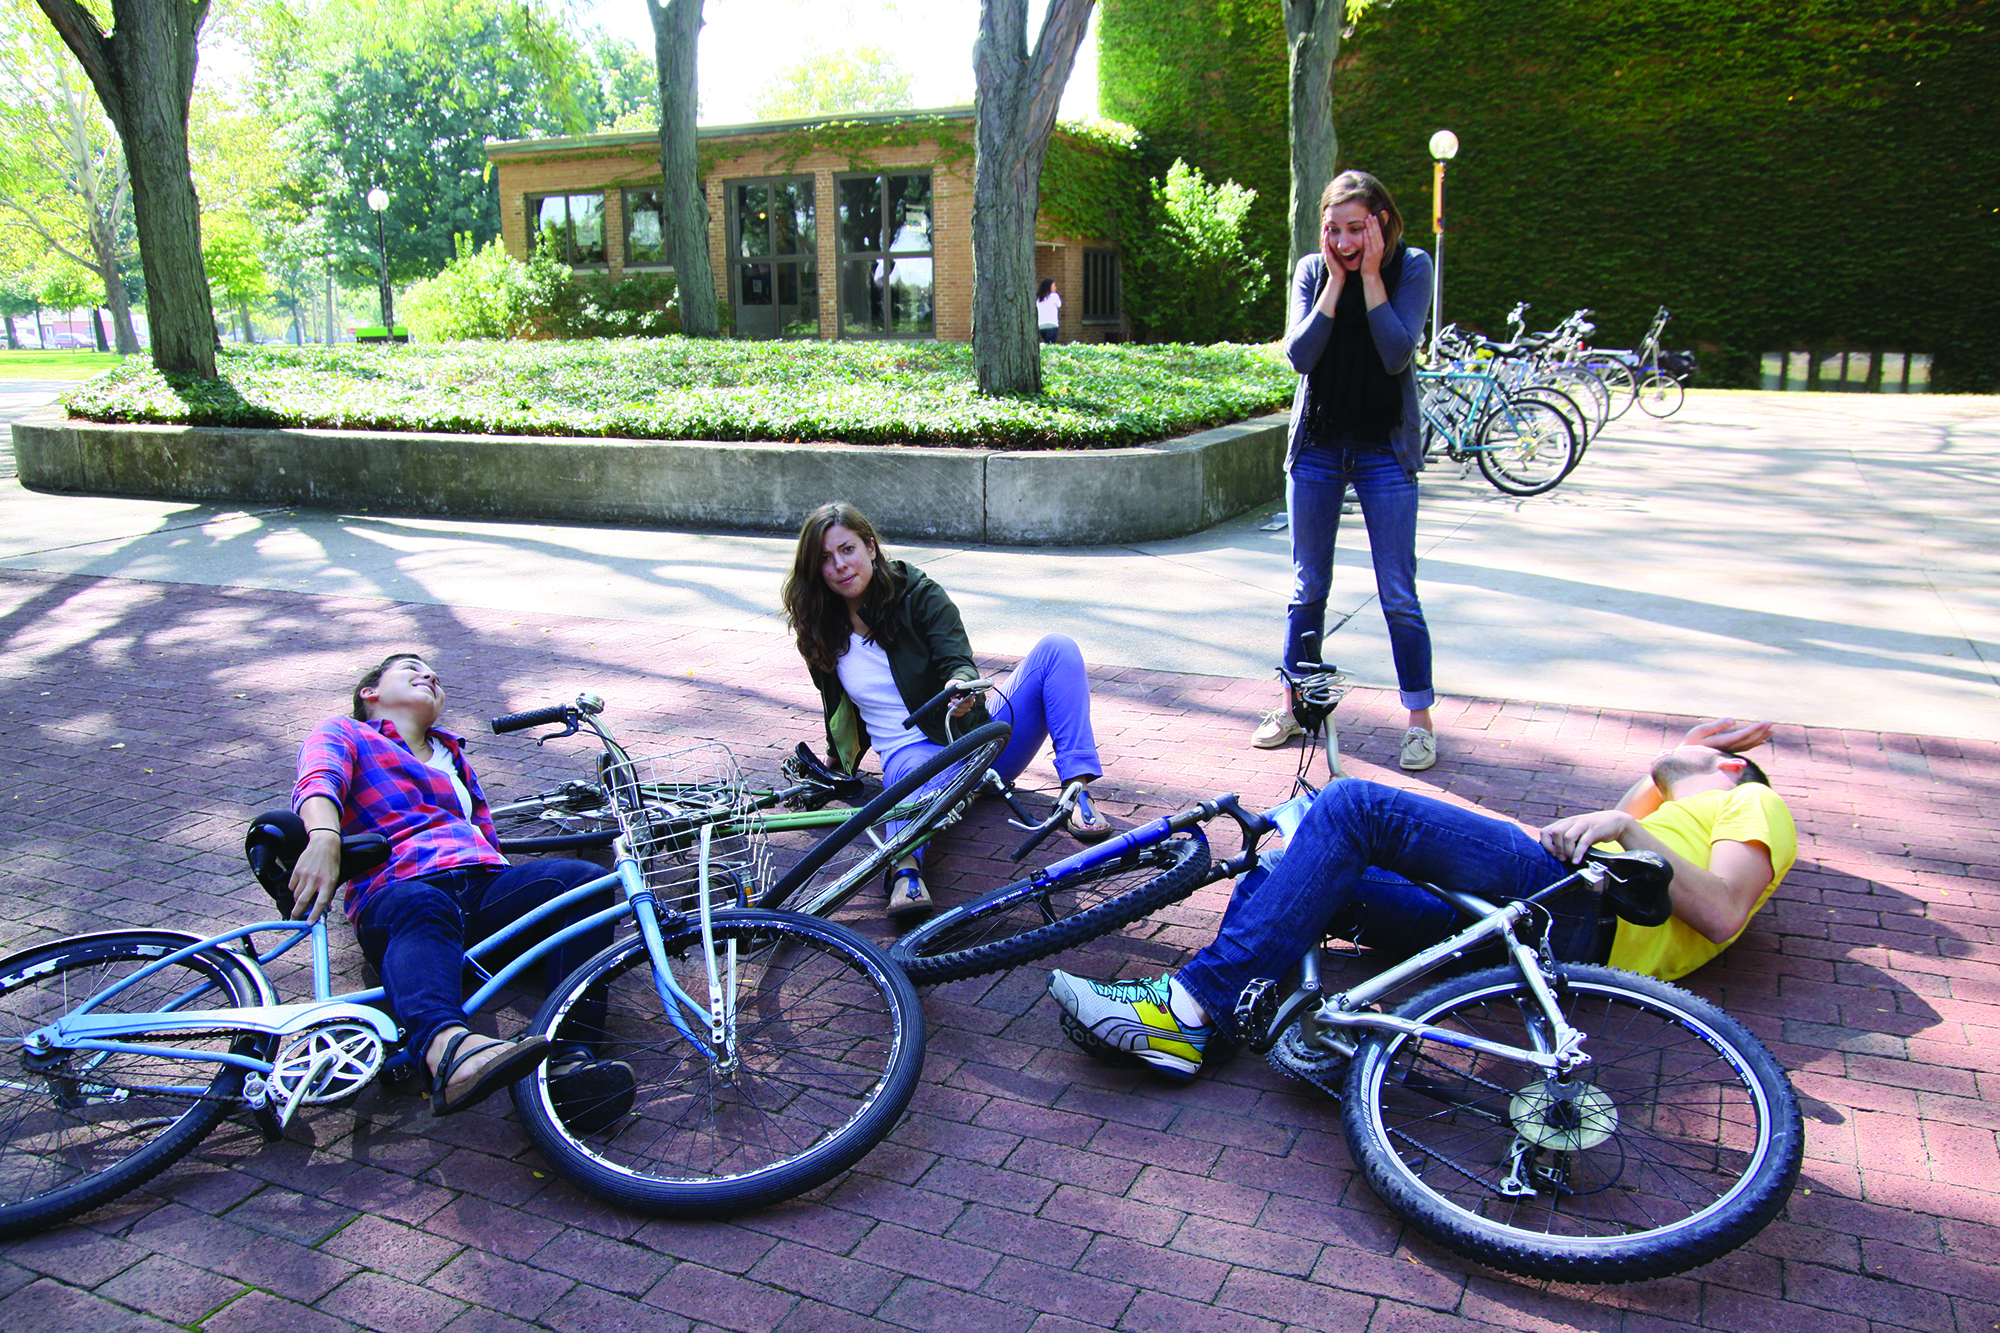 Three students are involved in a bike crash in Schrock Plaza while another student looks on in horror